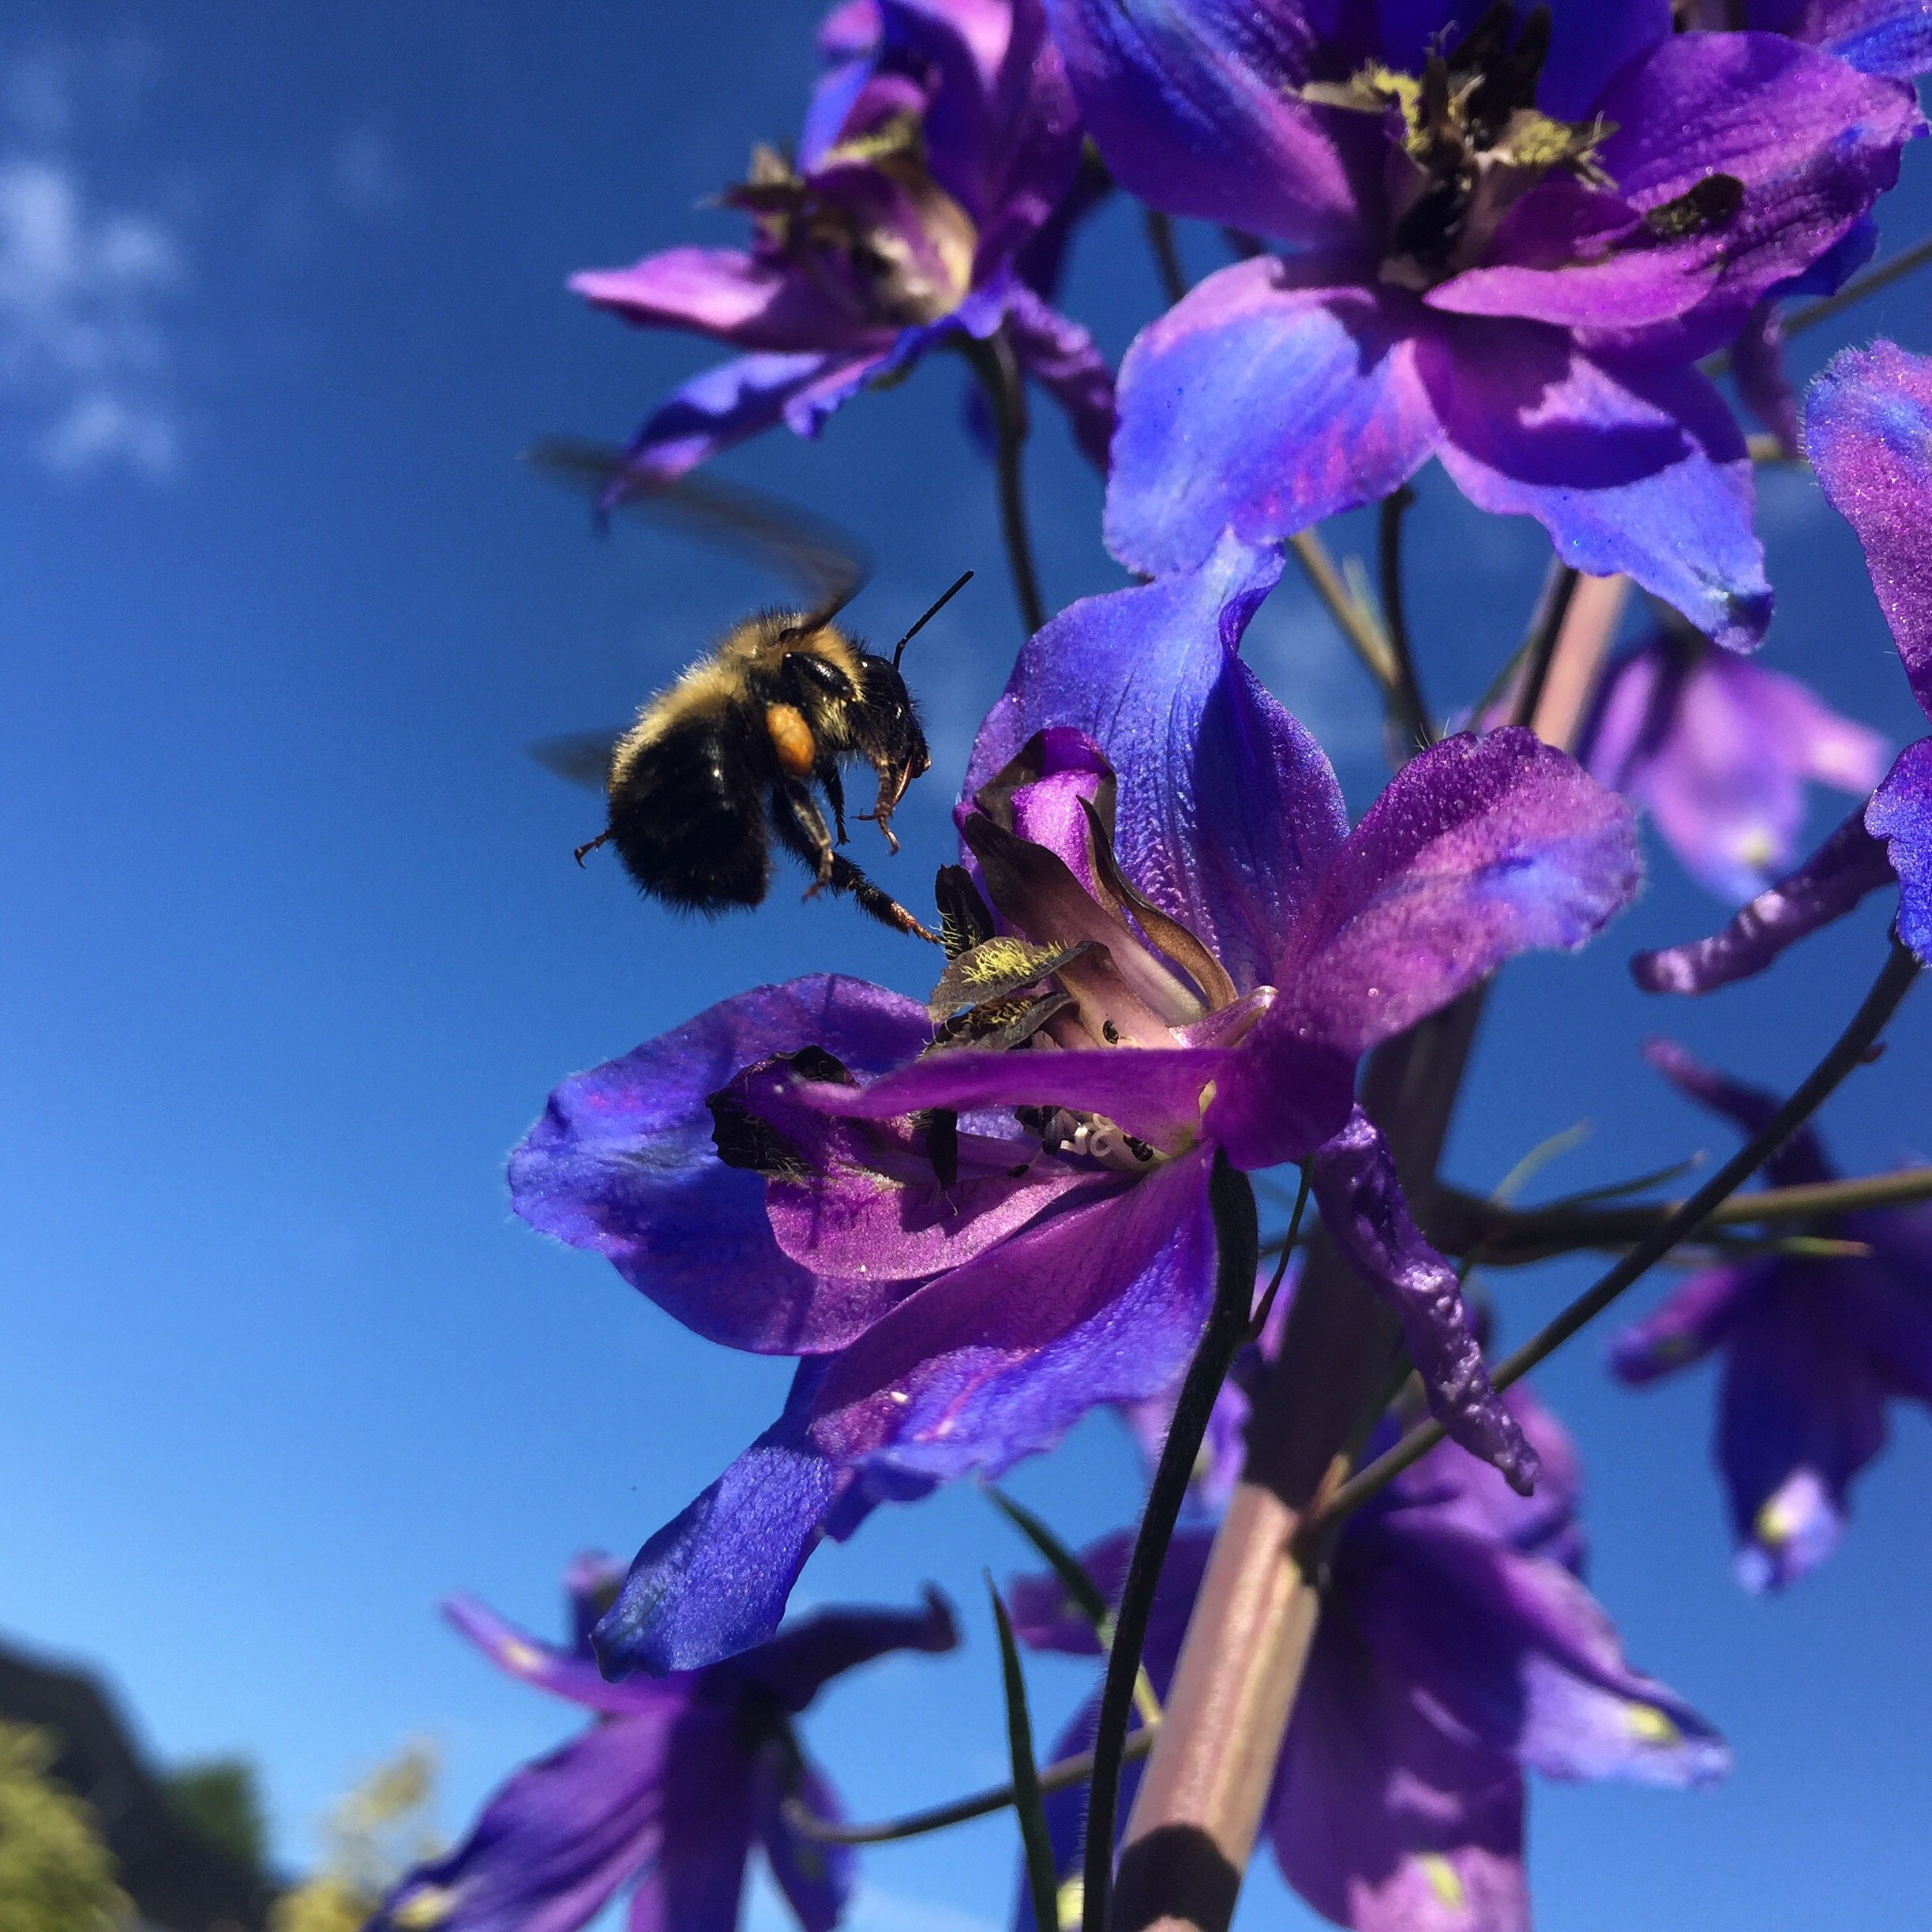 Resident pollinator on Delphinium flower